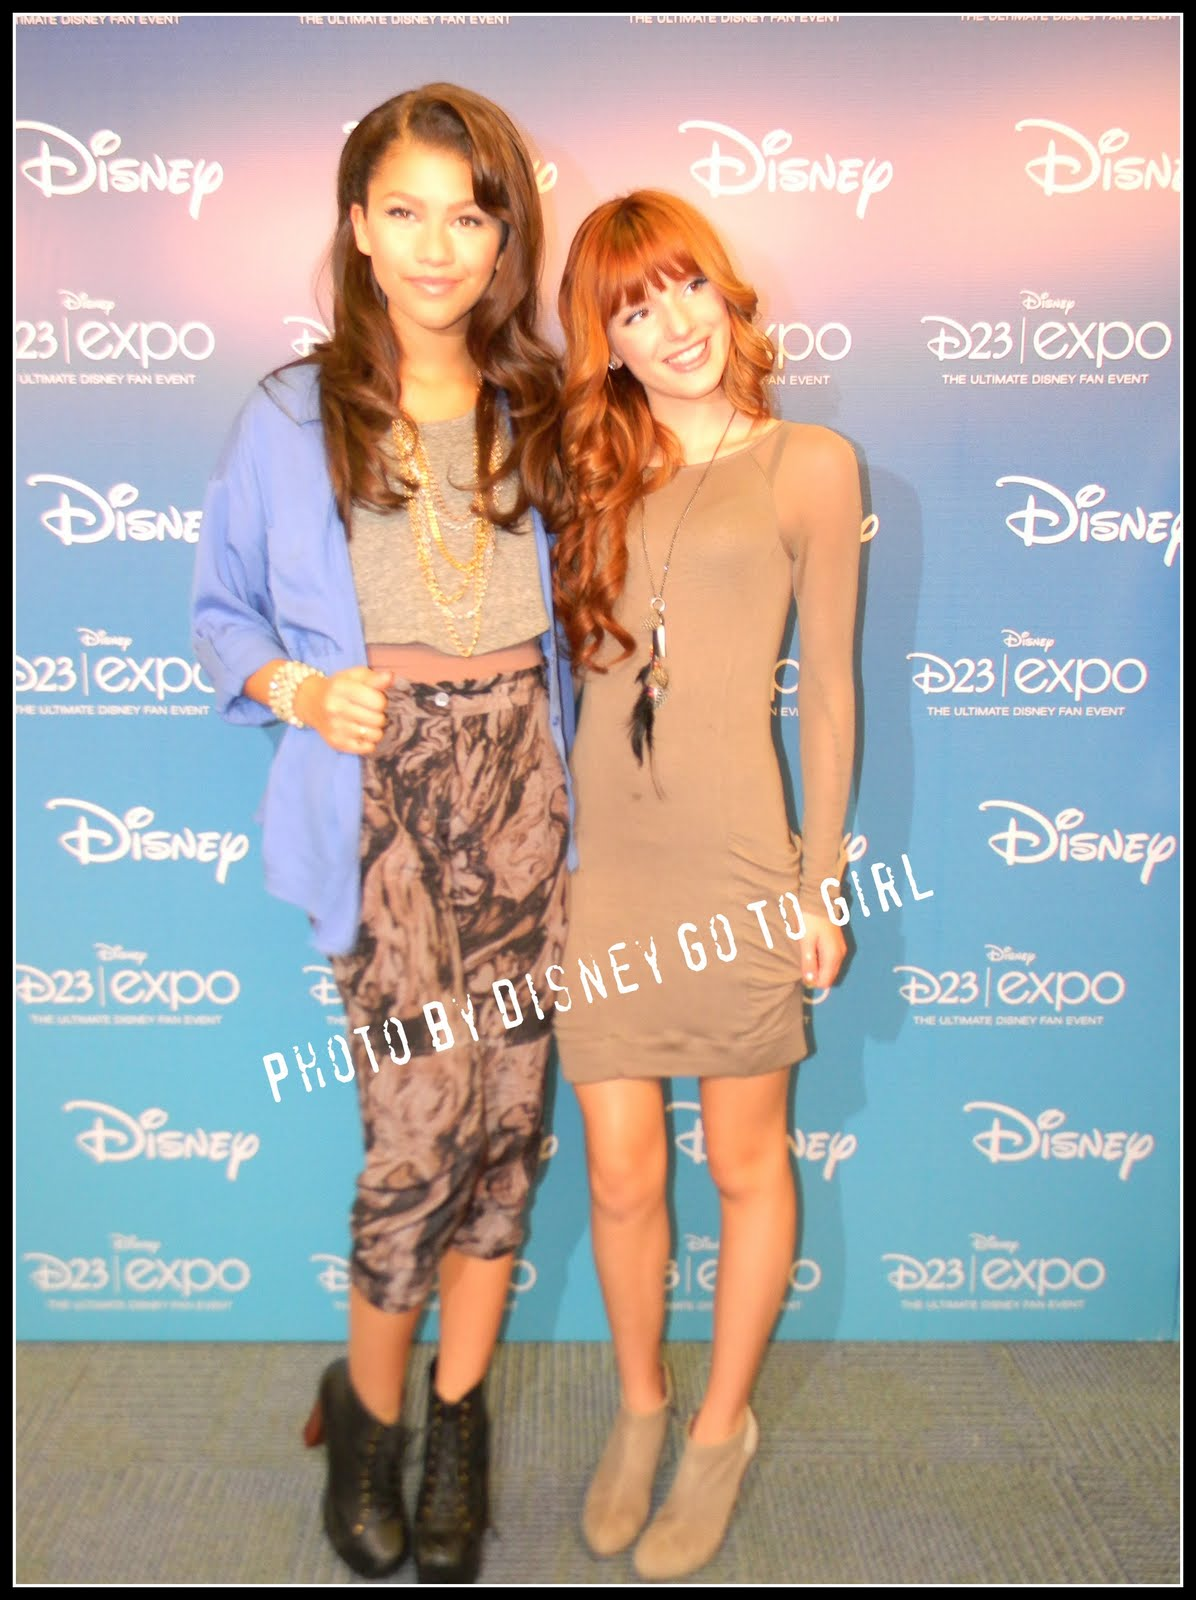 Dgtg Fashion Alert Disney Channel Stars Shake It Up On The D Epo